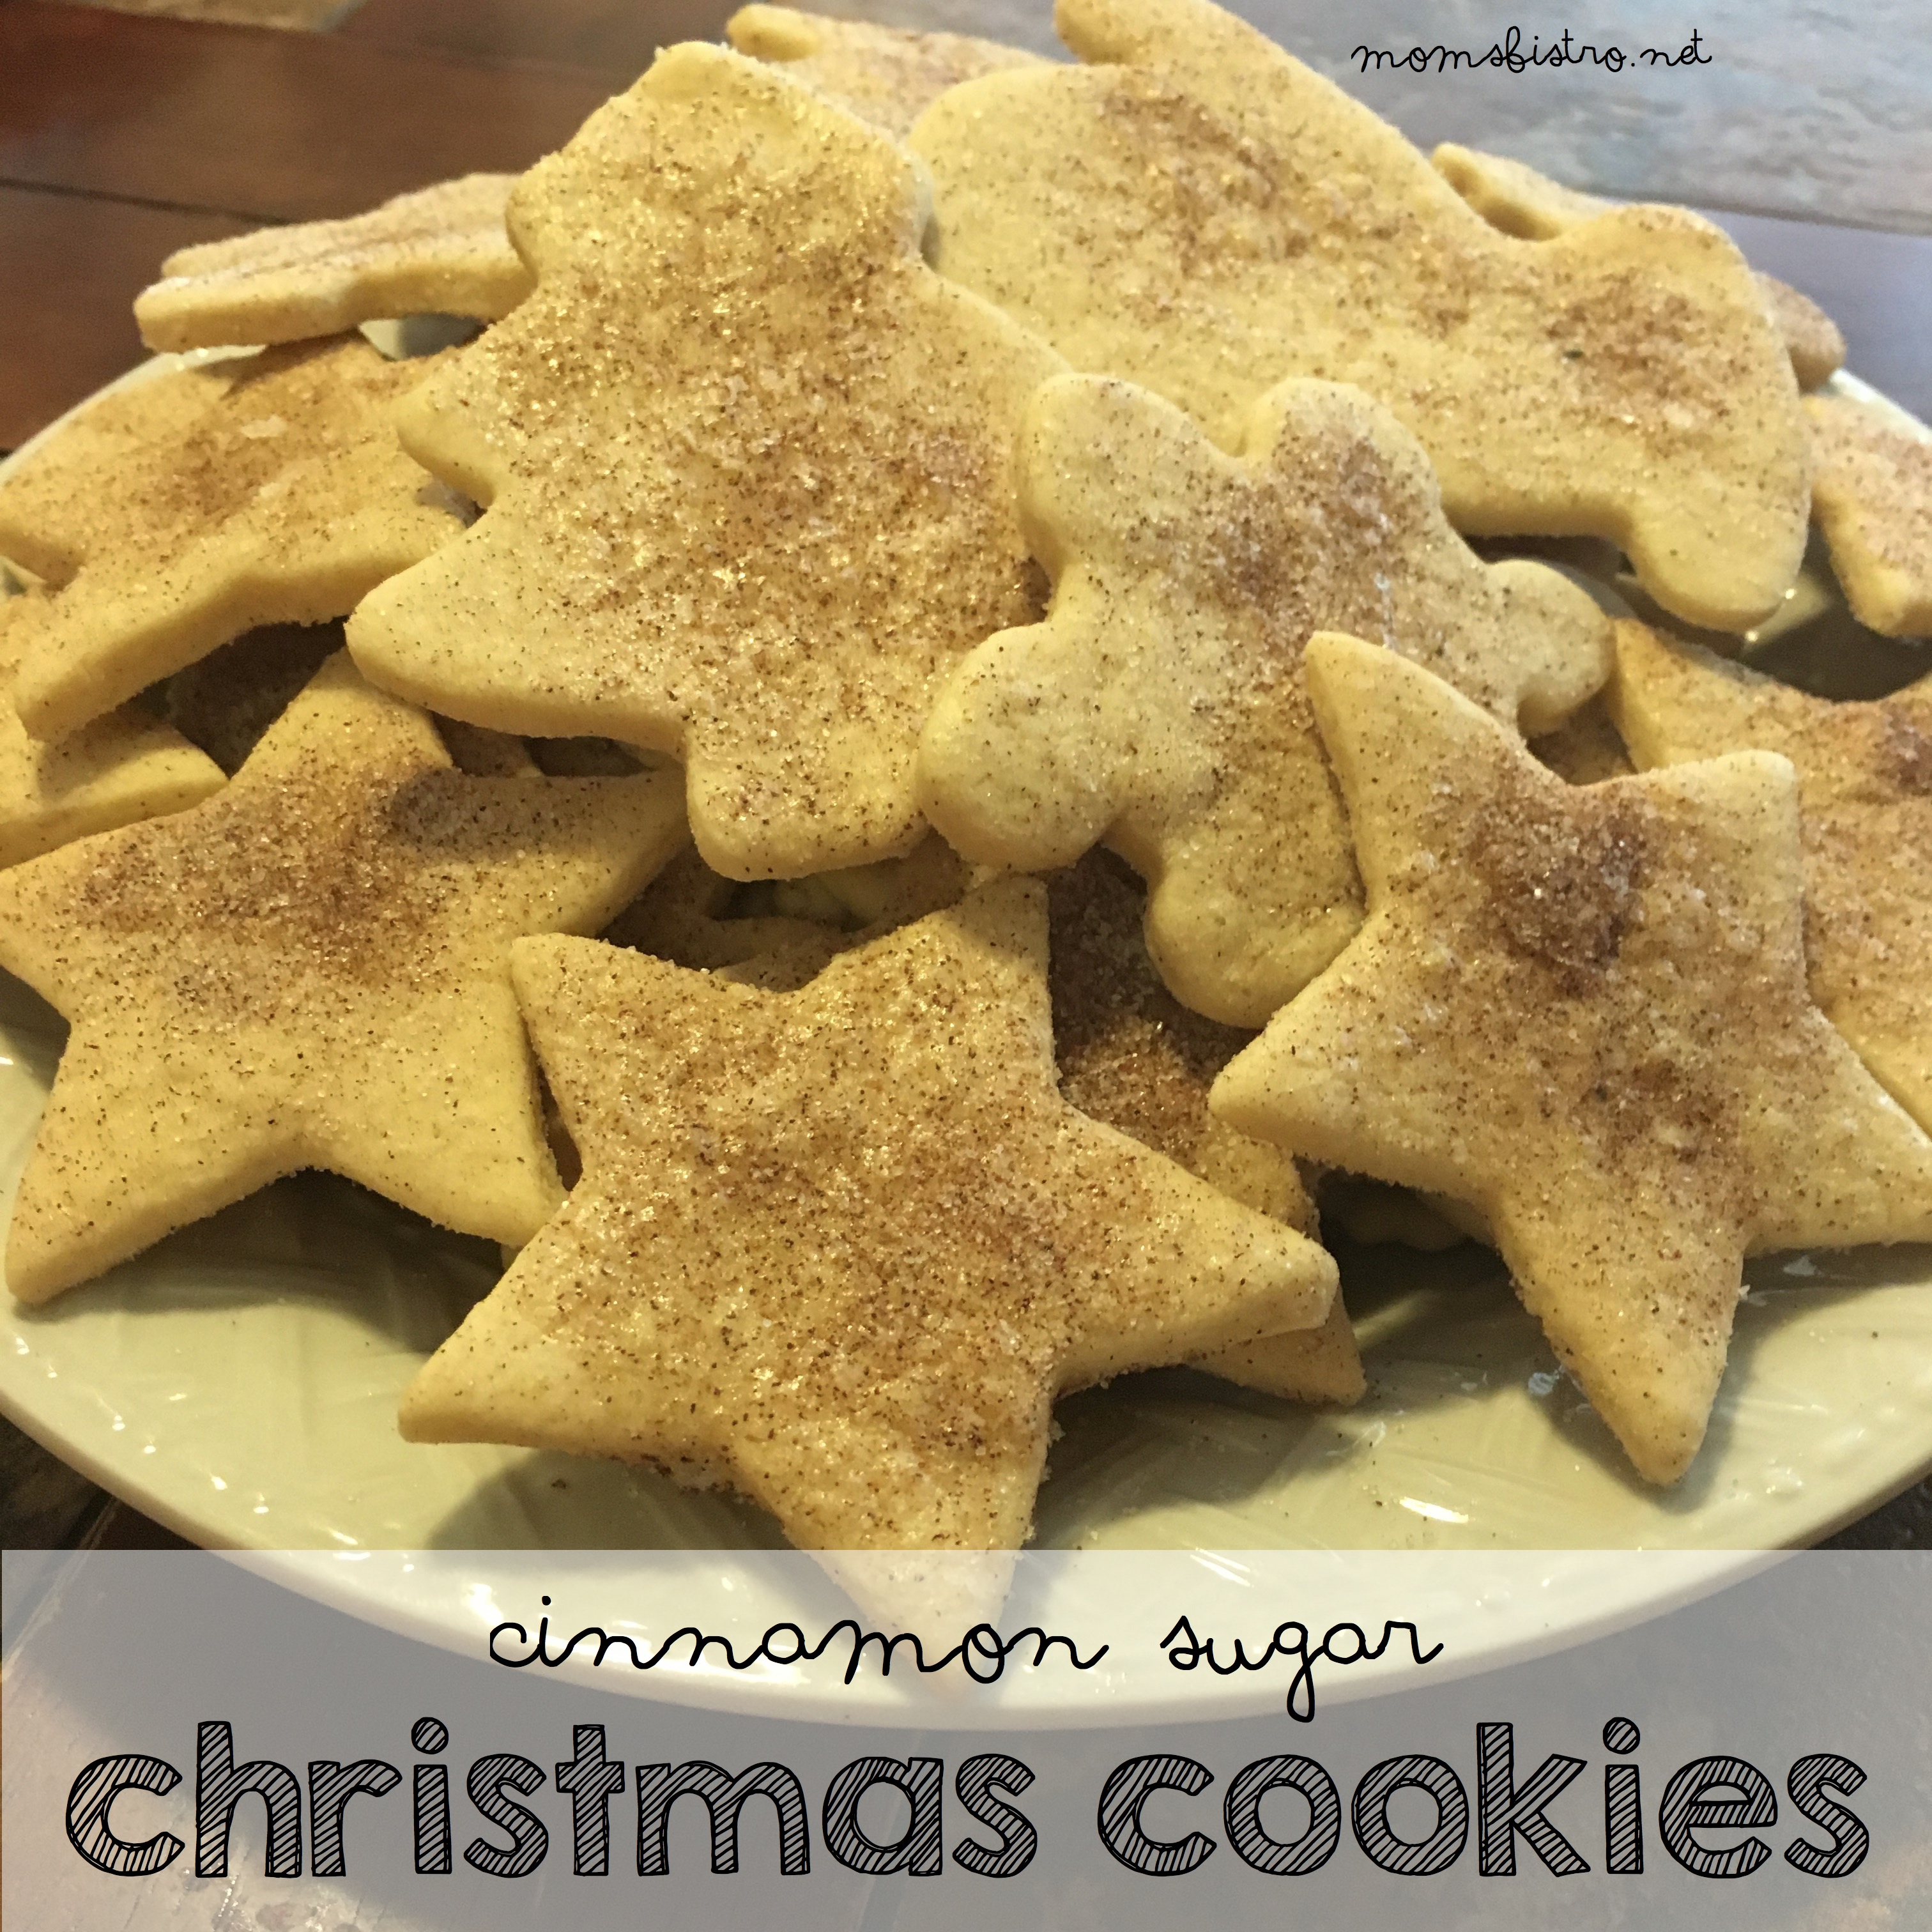 Celebrate National Cookie Day with These Cinnamon Sugar Christmas Cookies!